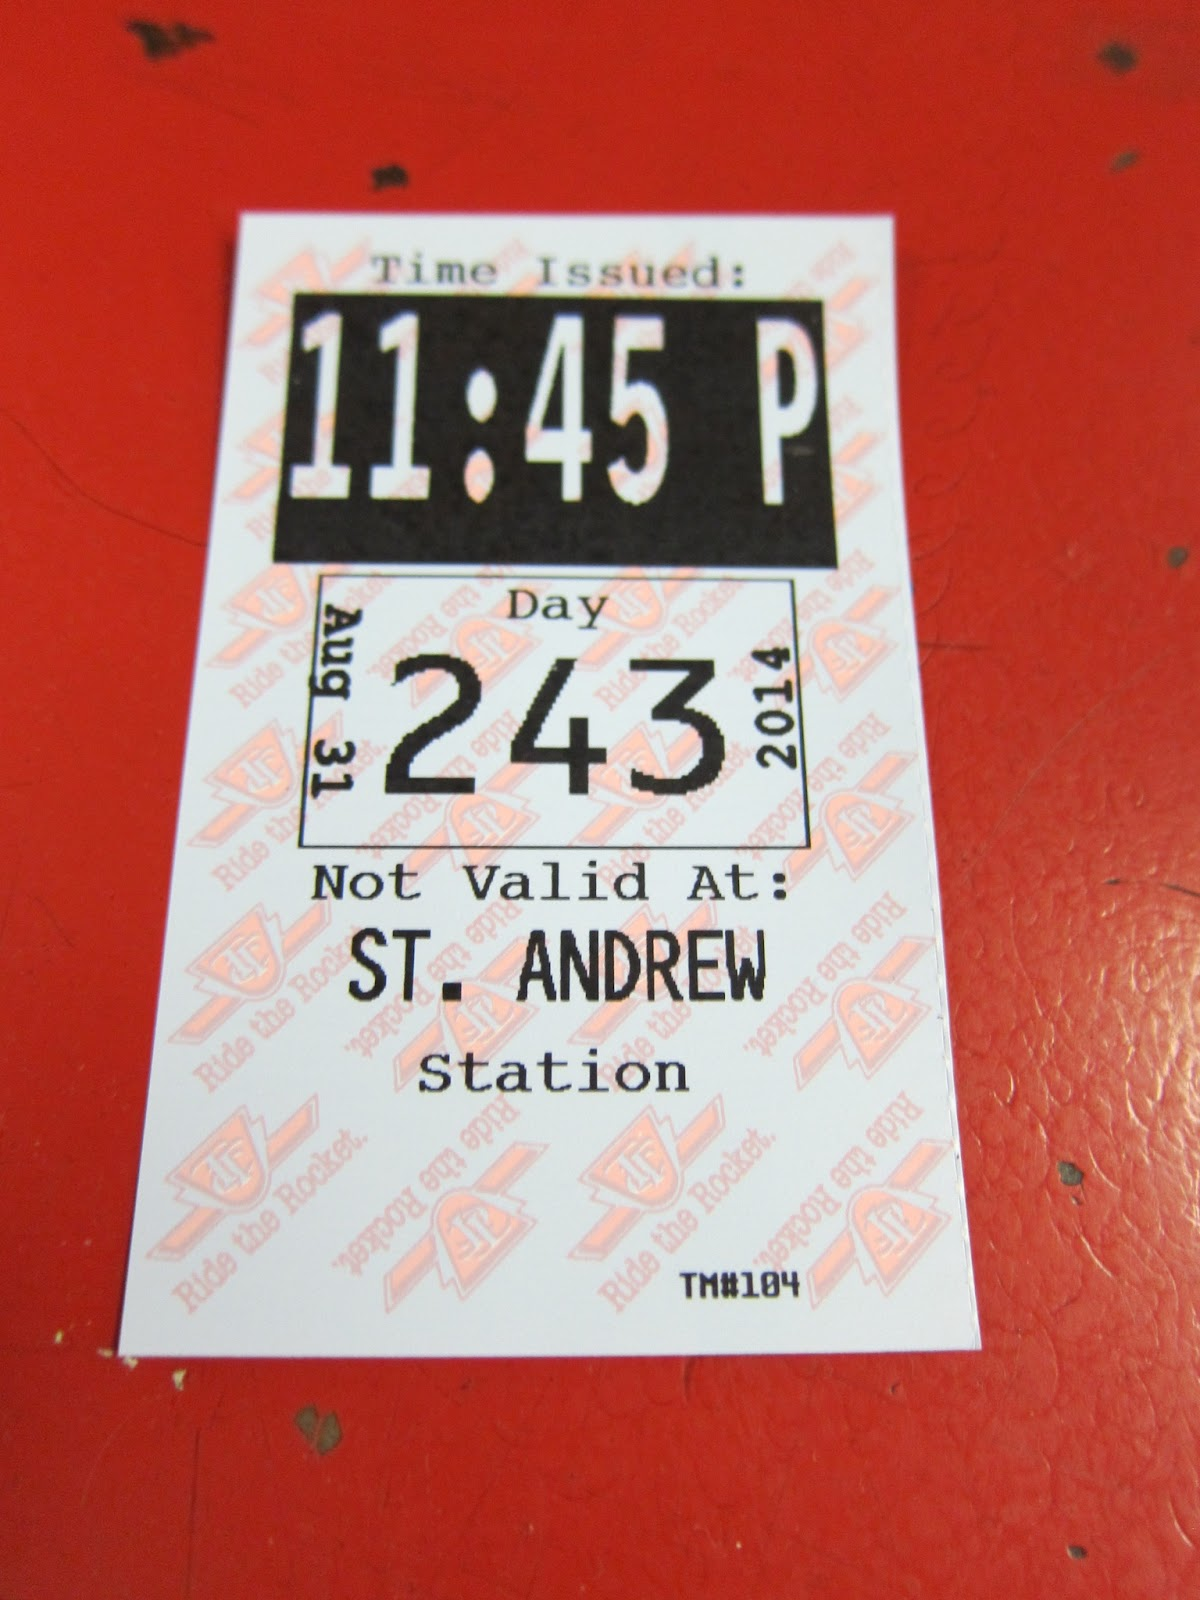 transfer from St. Andrew subway station